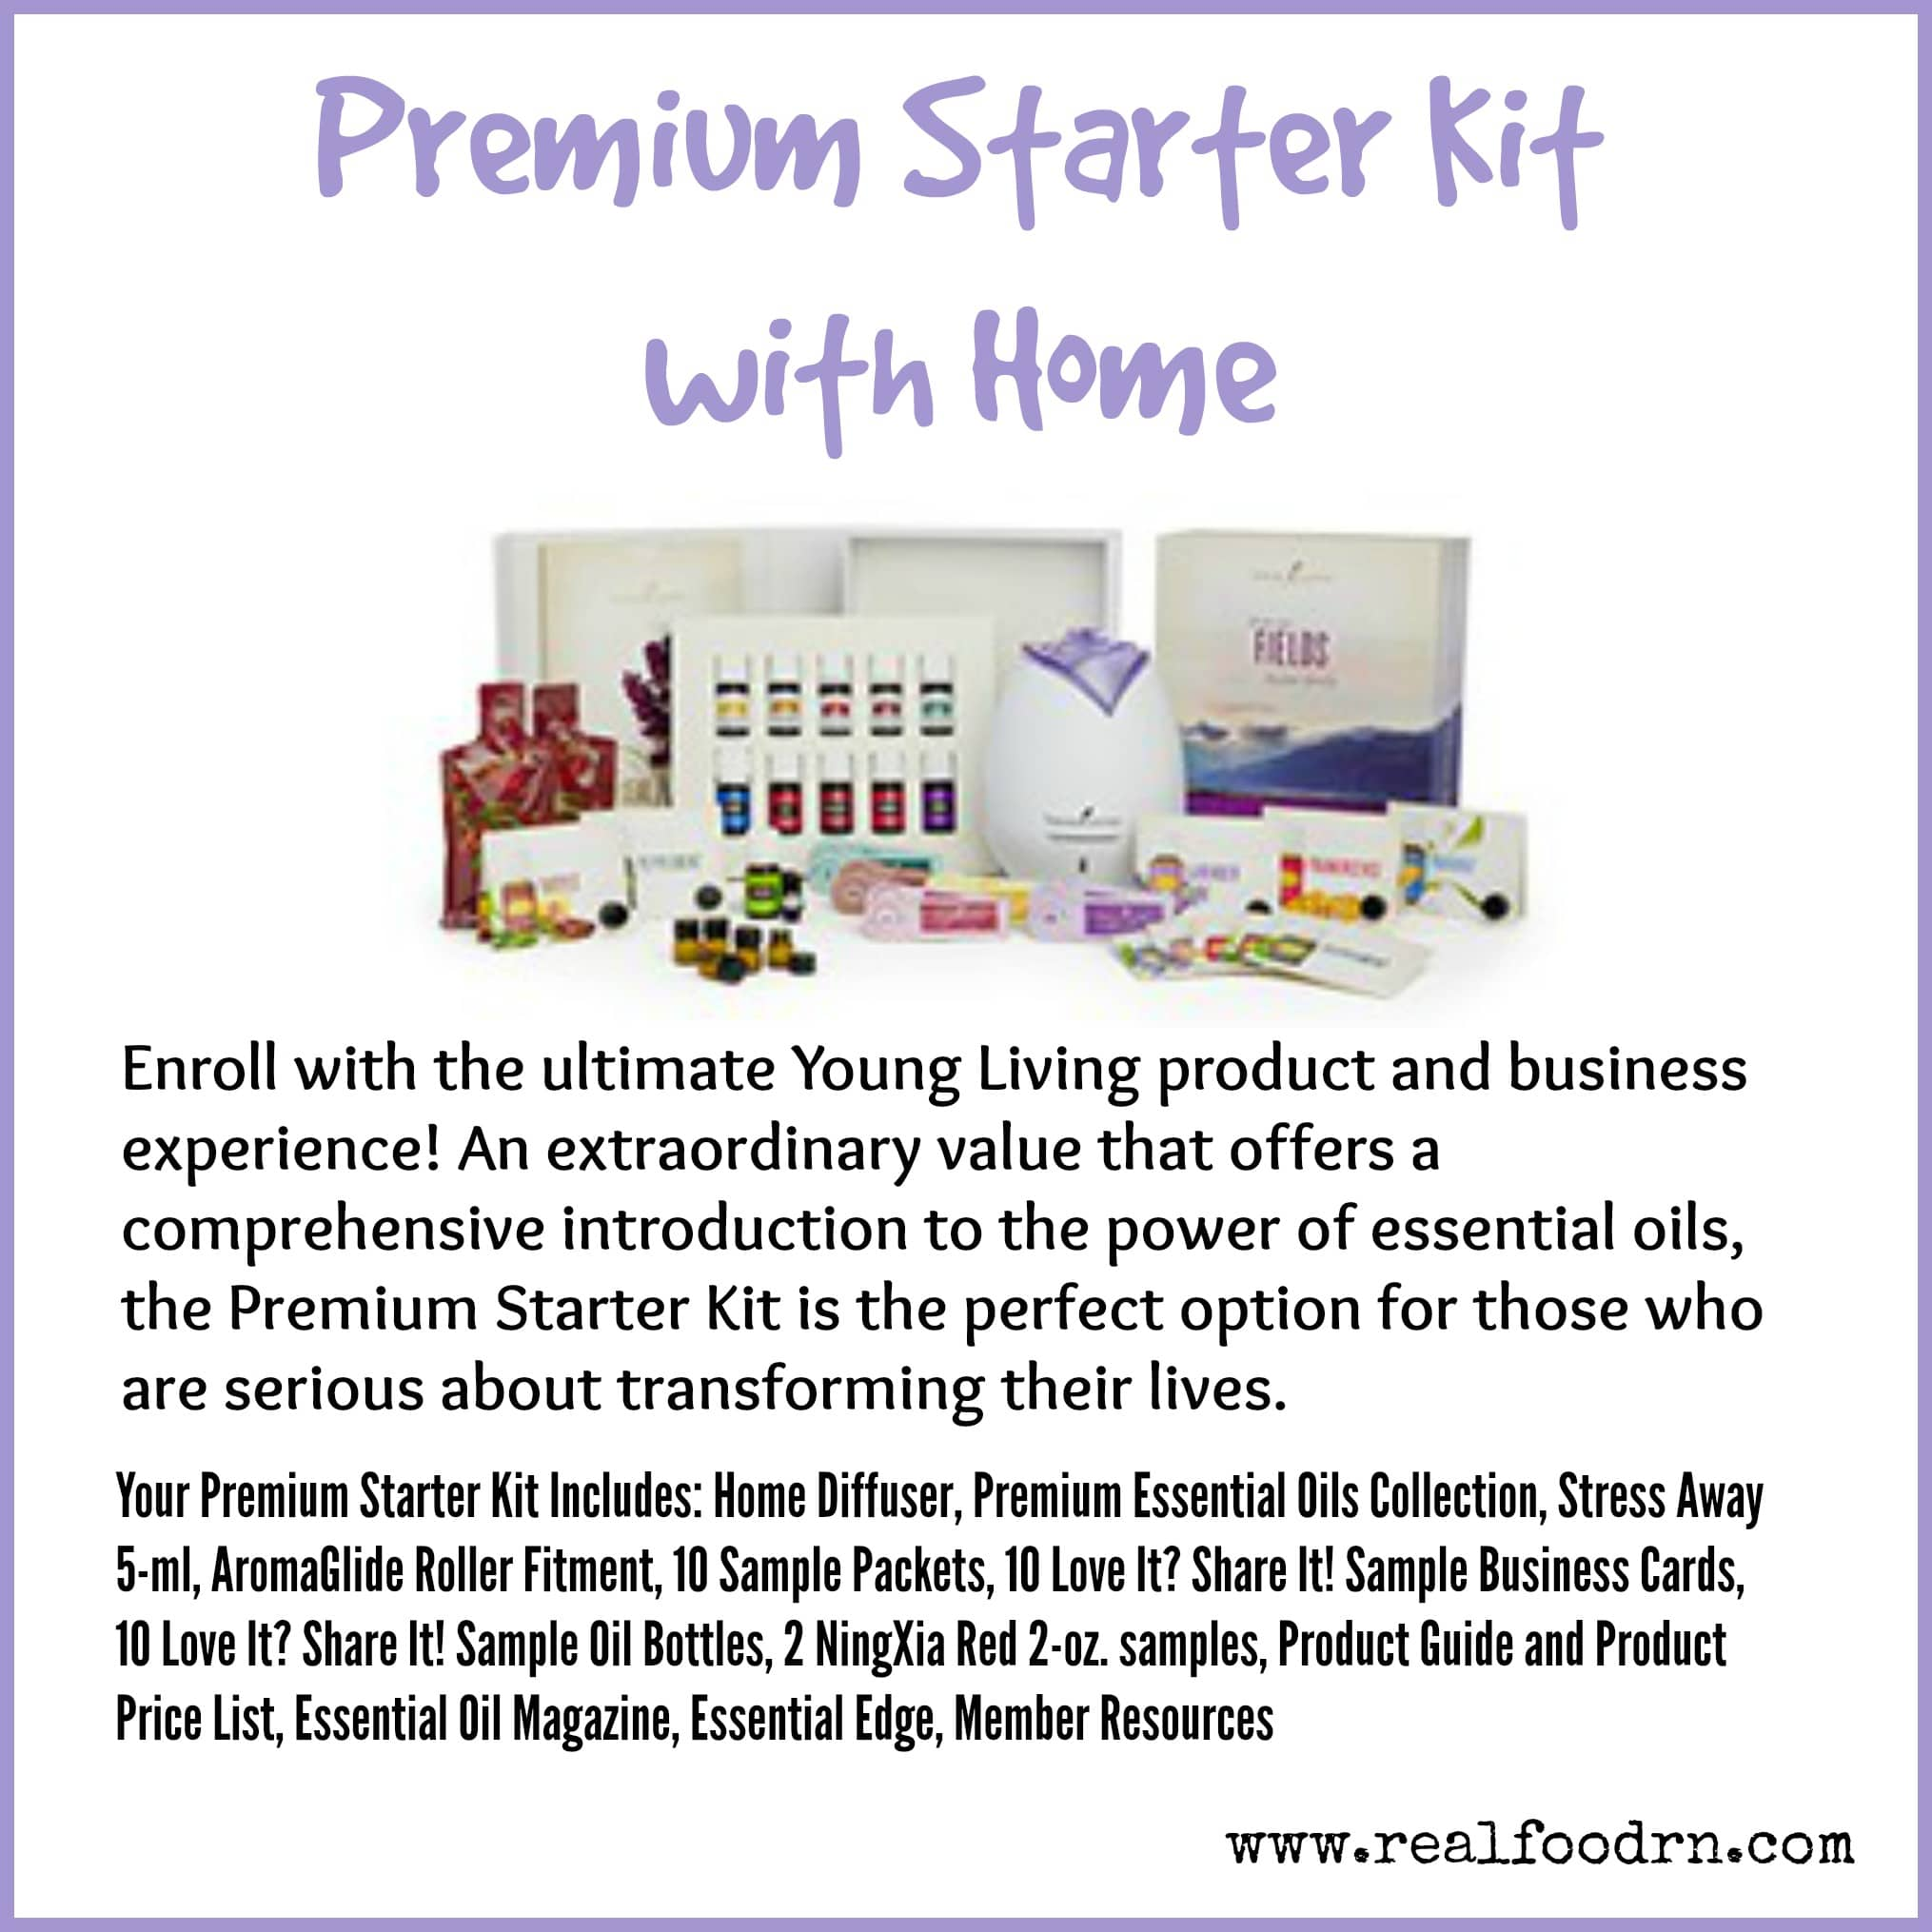 Premium Starter Kit with Home